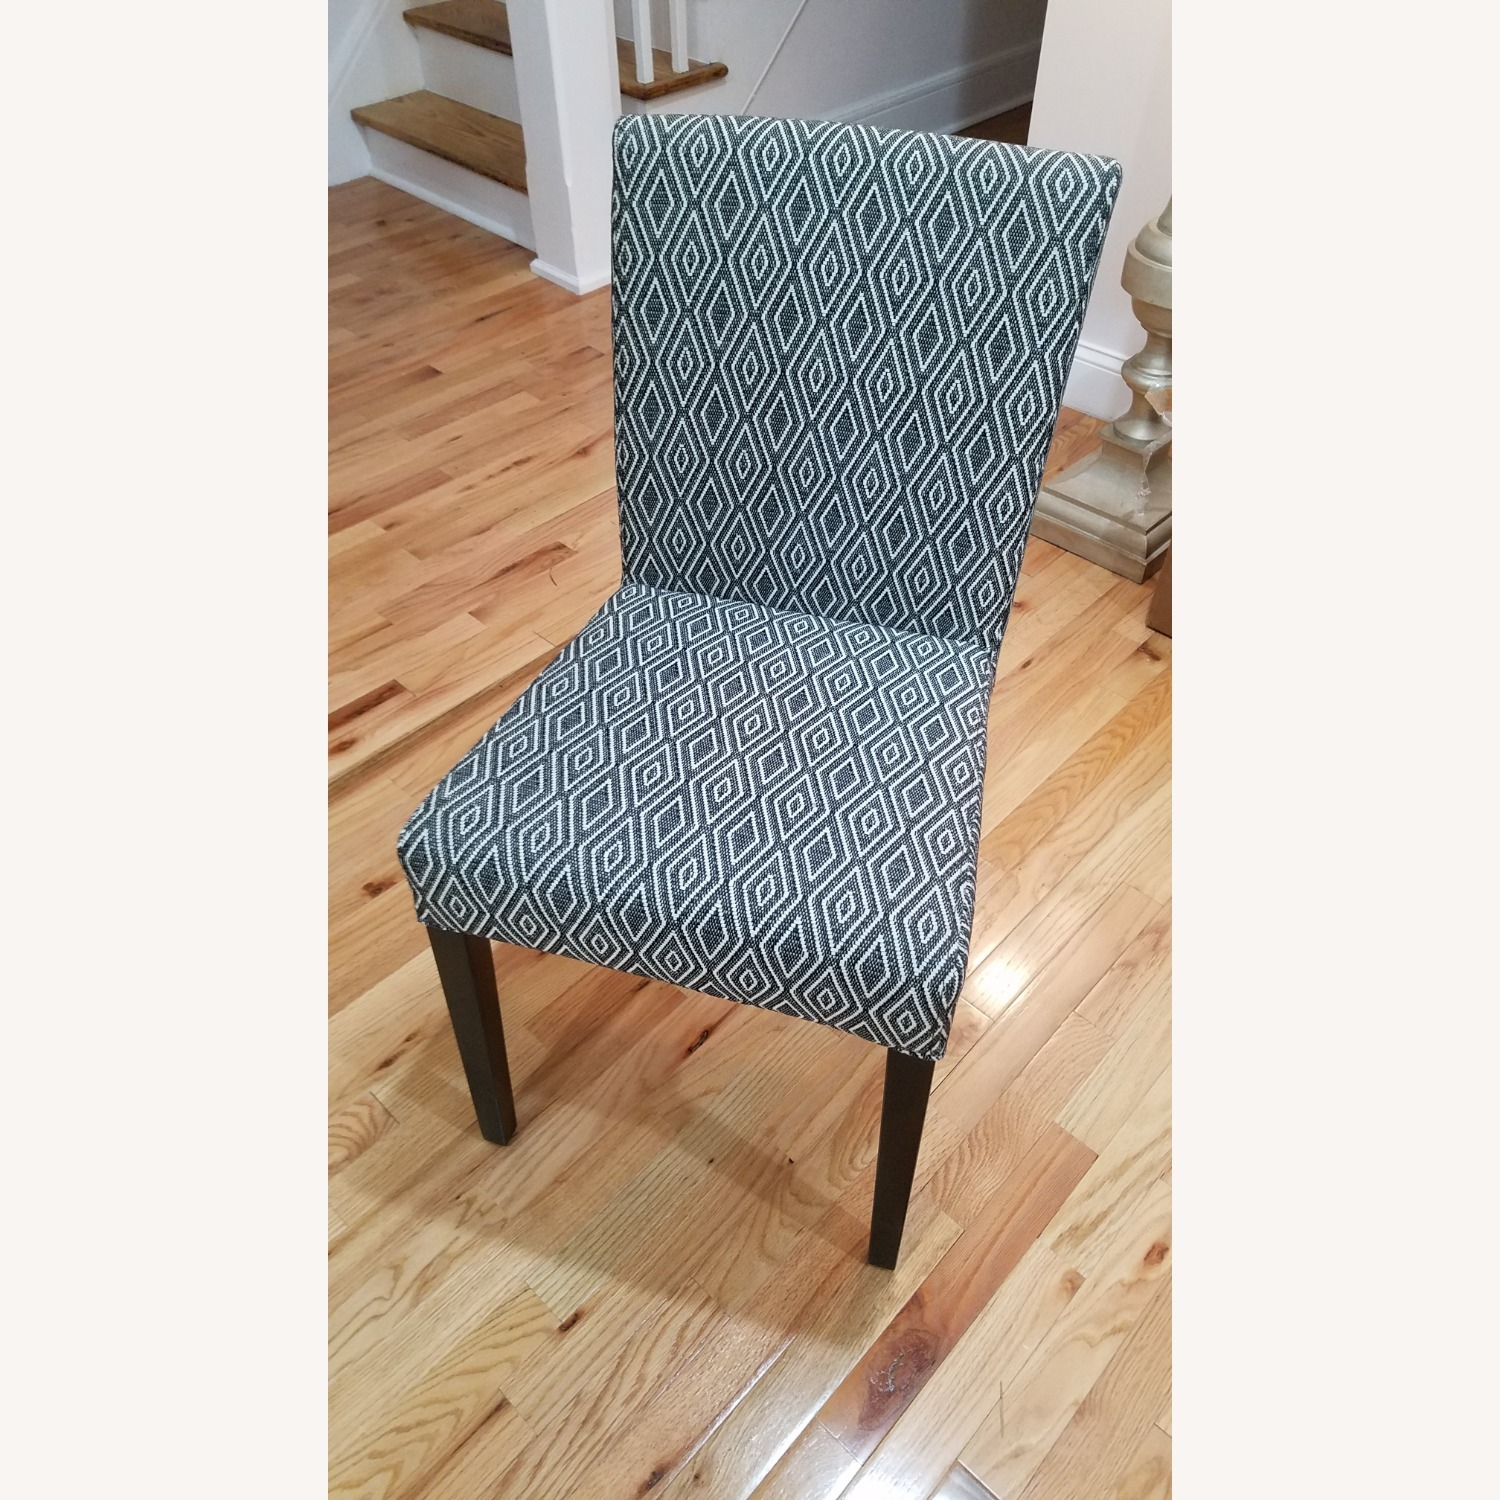 Crate & Barrel Dining Chairs - image-0